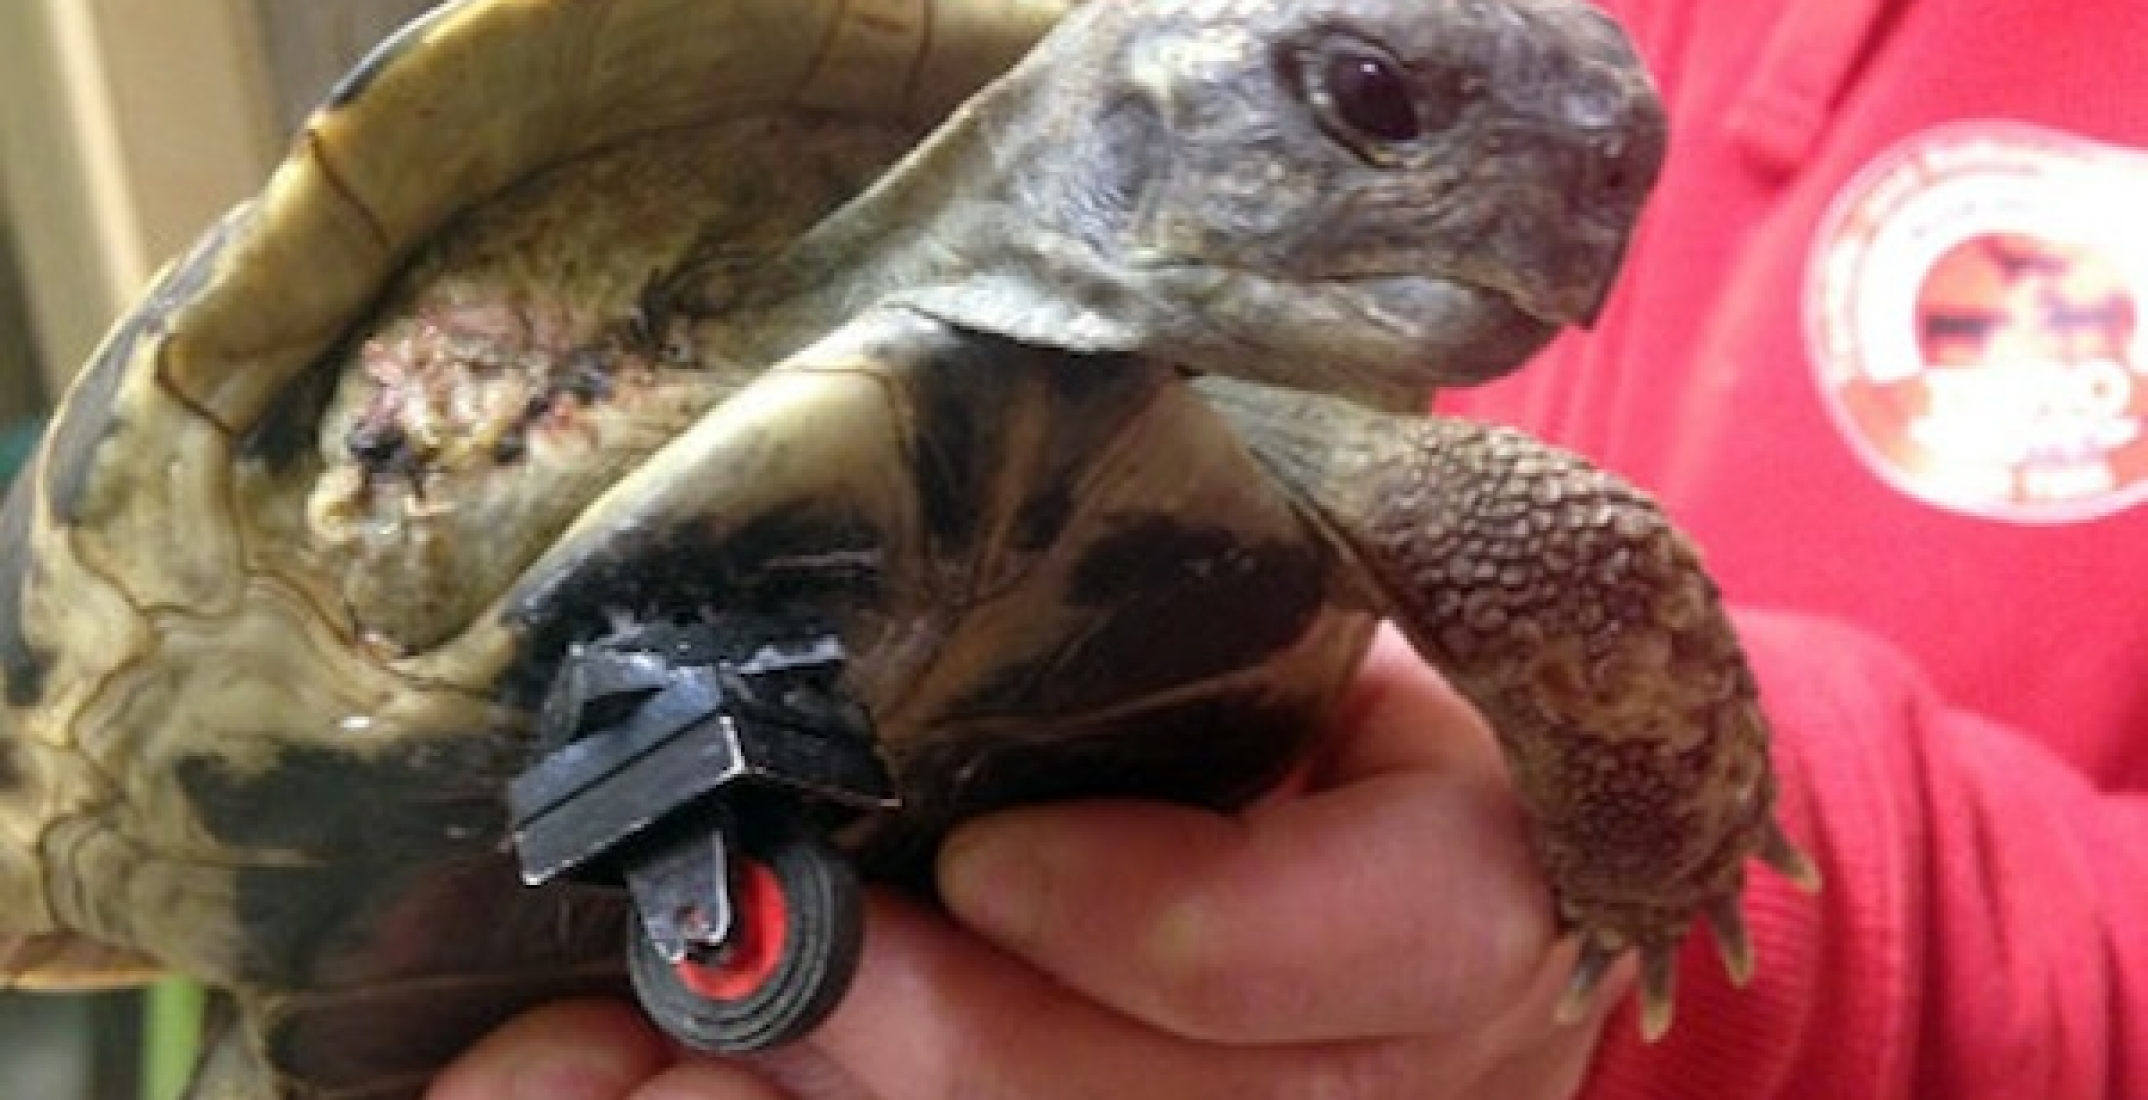 Amputee Tortoise Gets A LEGO Wheel To Replace Its Leg